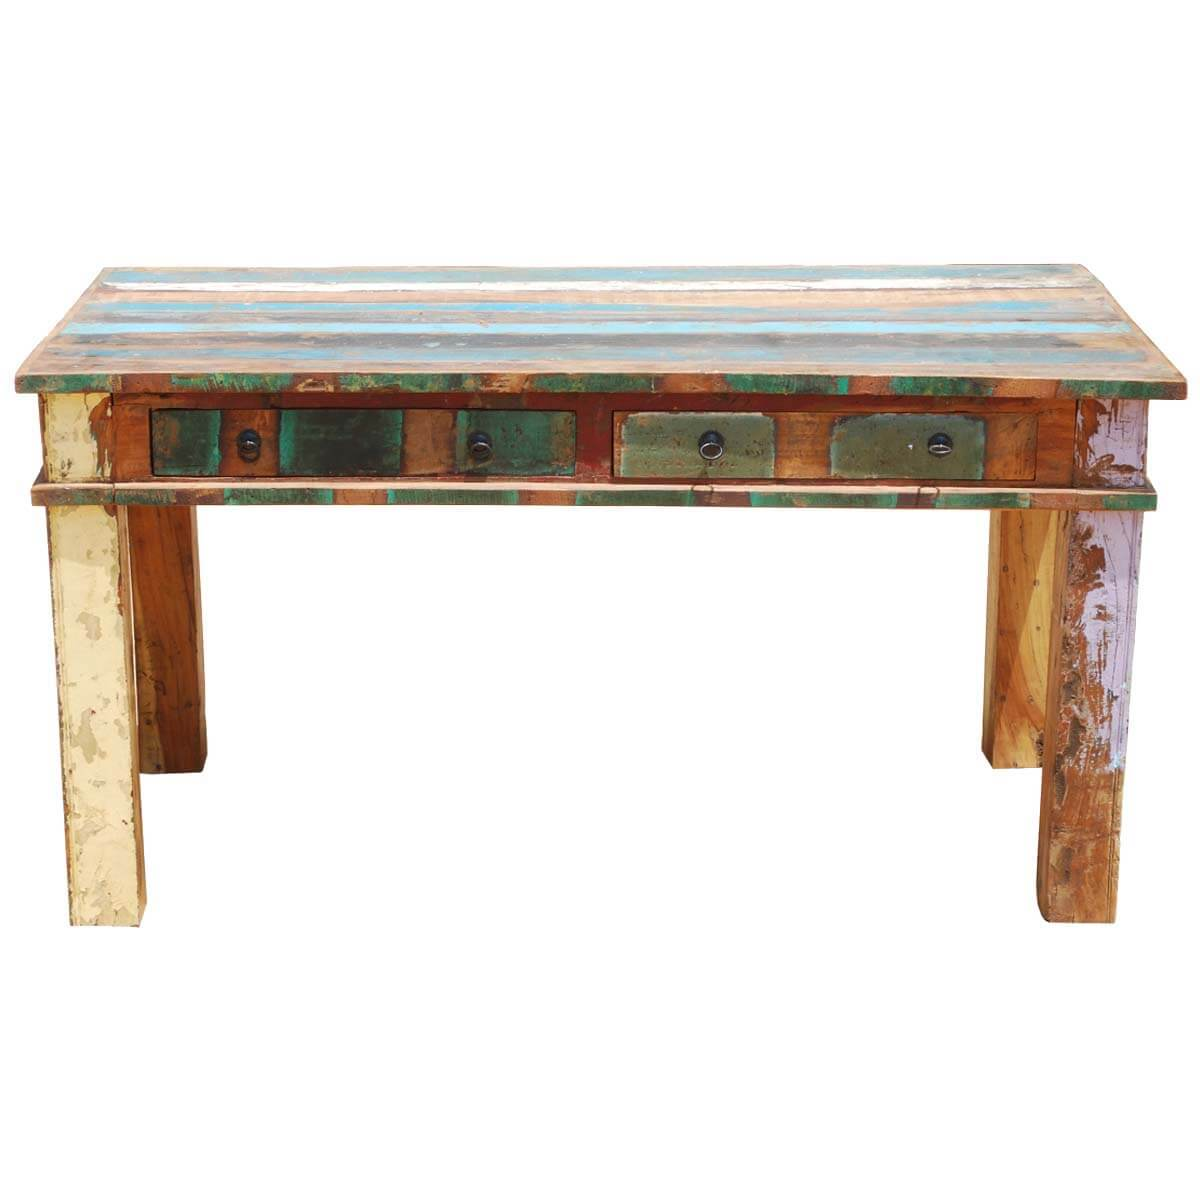 p reclaimed wood 6 seater rustic dining room table furniture